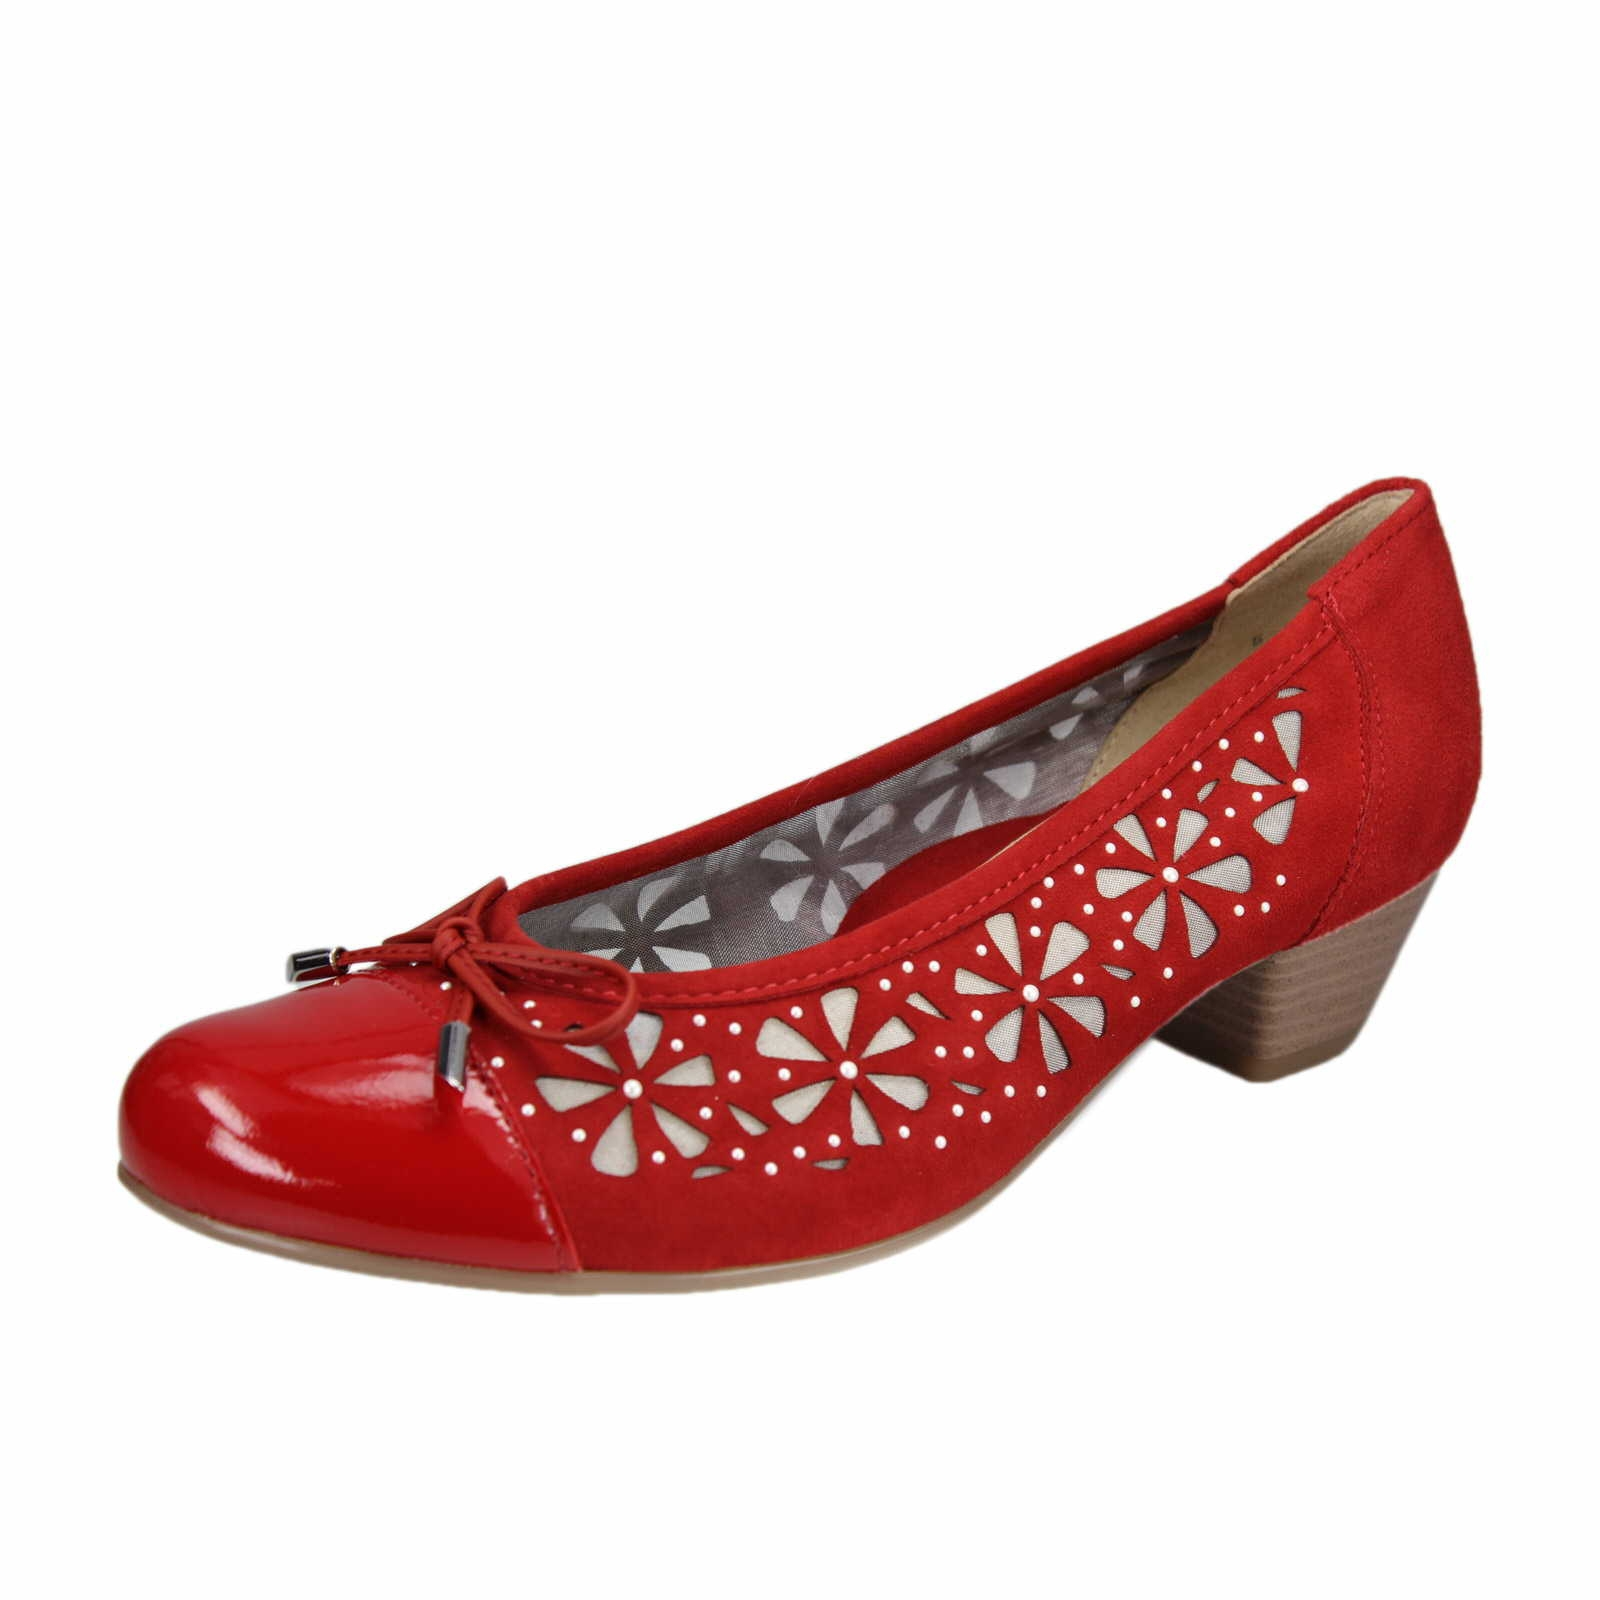 2018 shoes the sale of shoes good quality Ara Pumps für Damen in rot | Schuhparadies